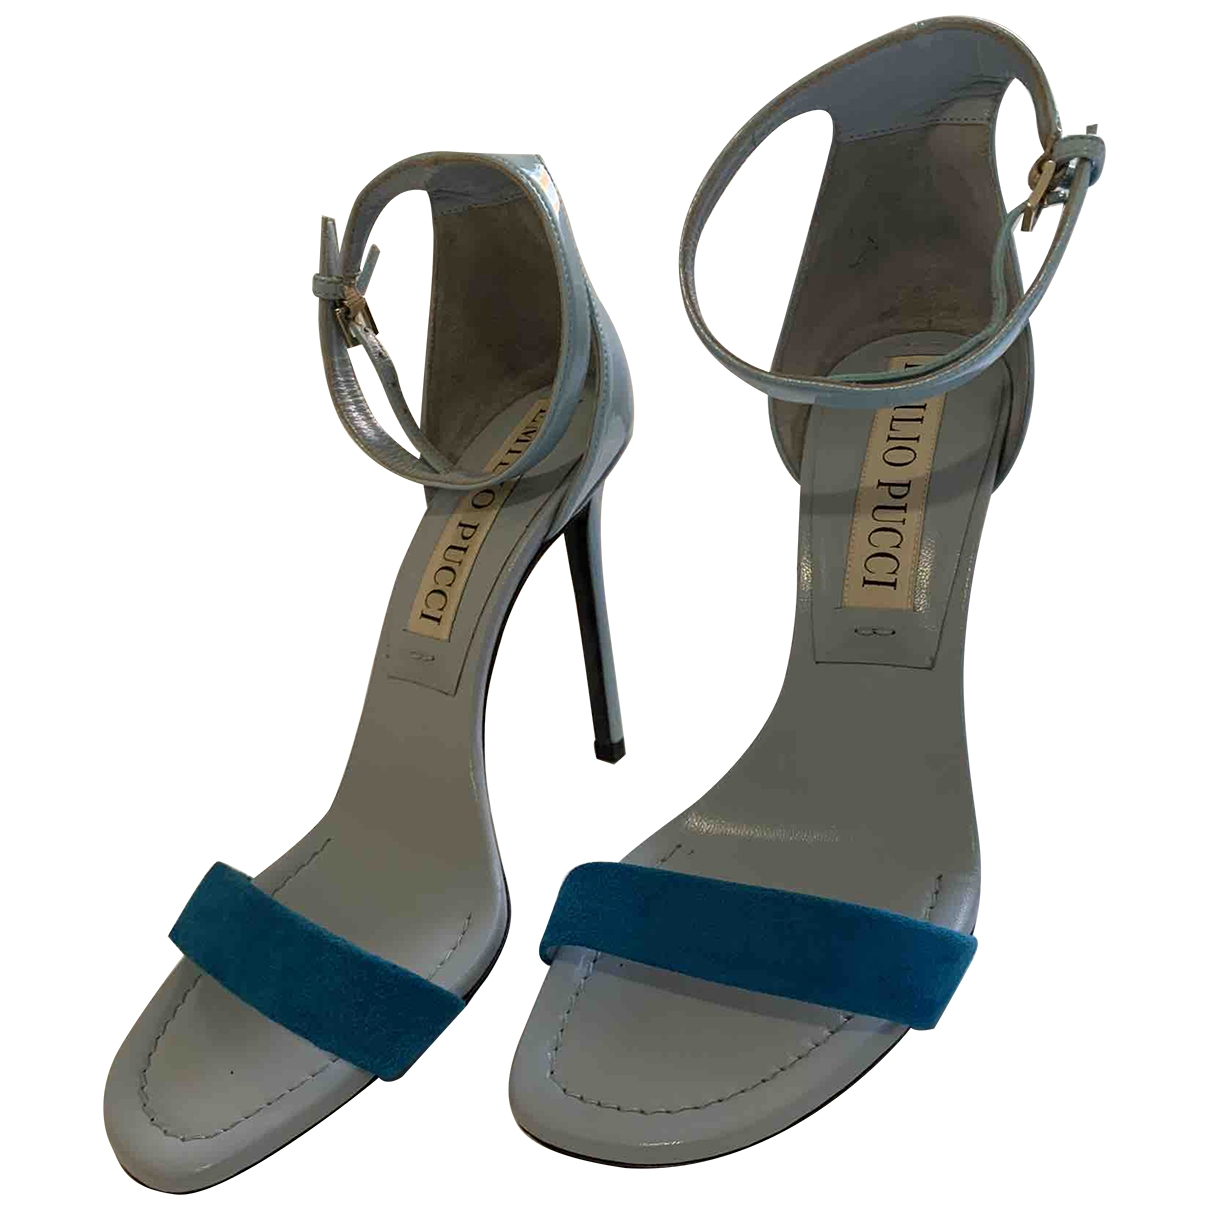 Emilio Pucci \N Turquoise Patent leather Sandals for Women 37 EU